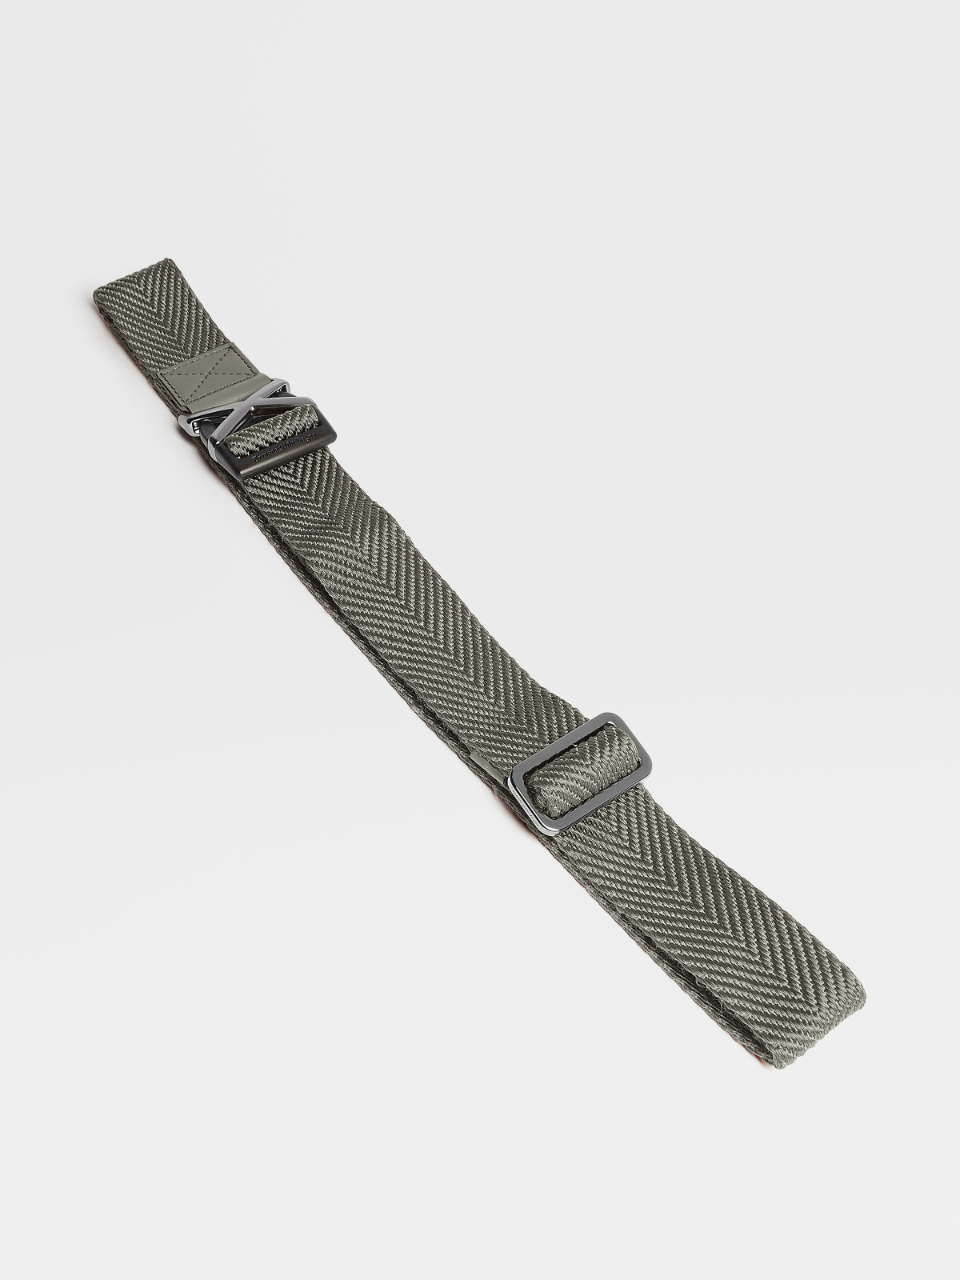 Rayon Trolley Belt